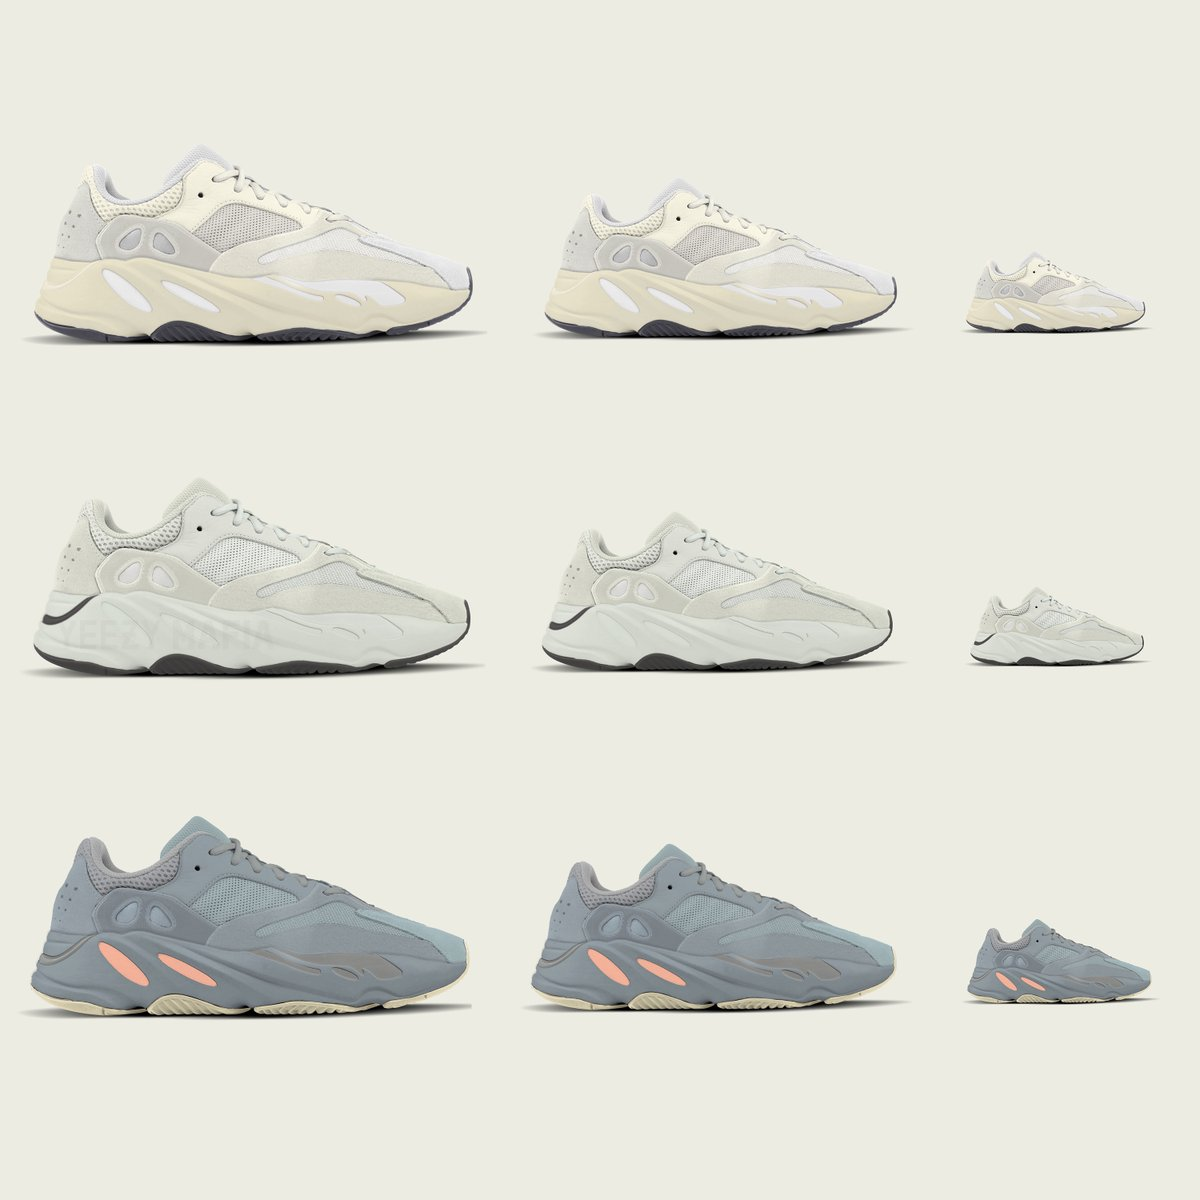 Kids adidas Yeezy Boost 700 2019 Toddler Infant Sizes